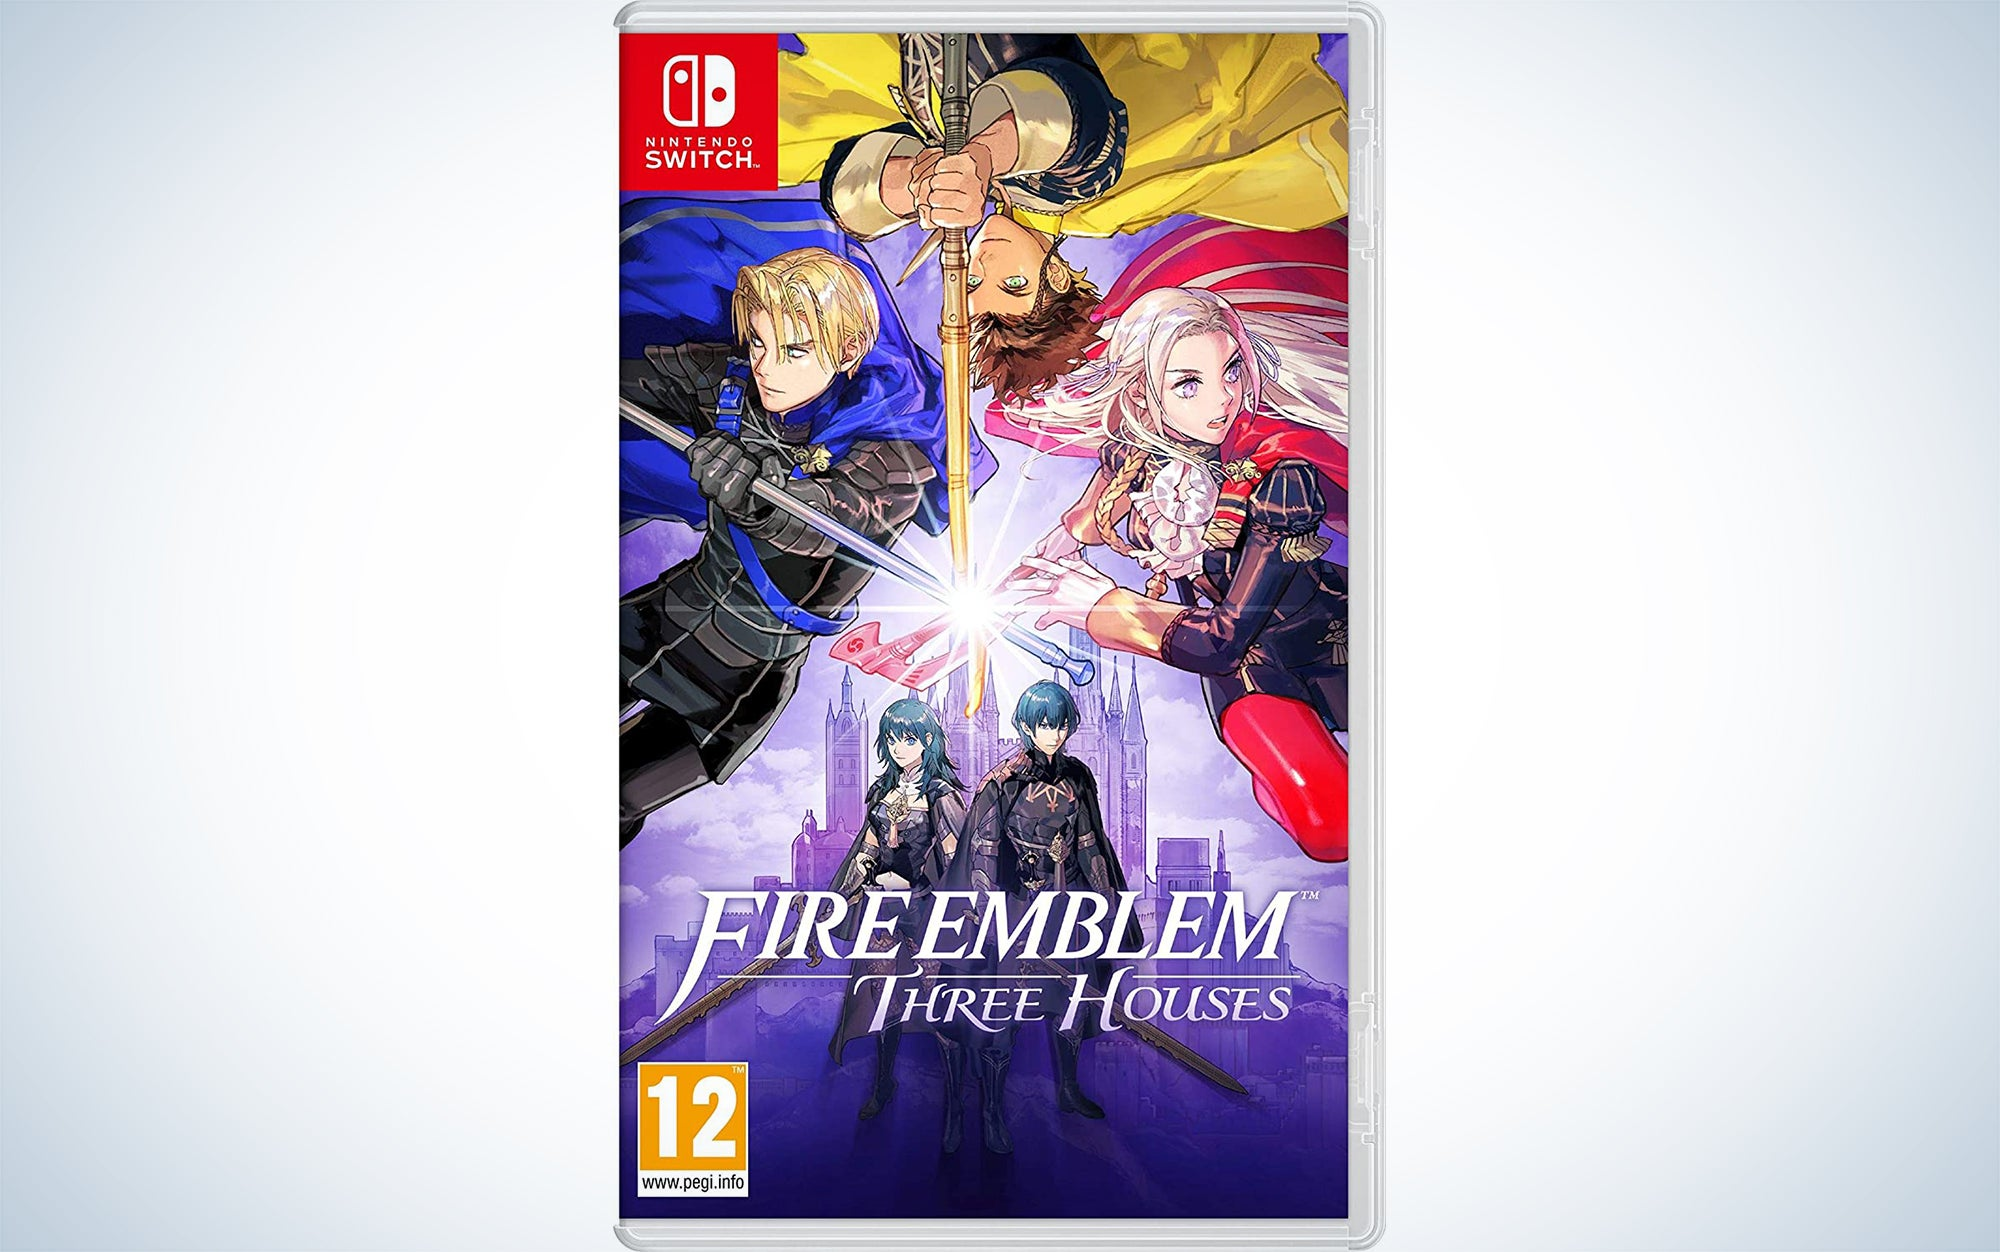 Fire Emblem: Three Houses is one of the most popular video games for Nintendo Switch.